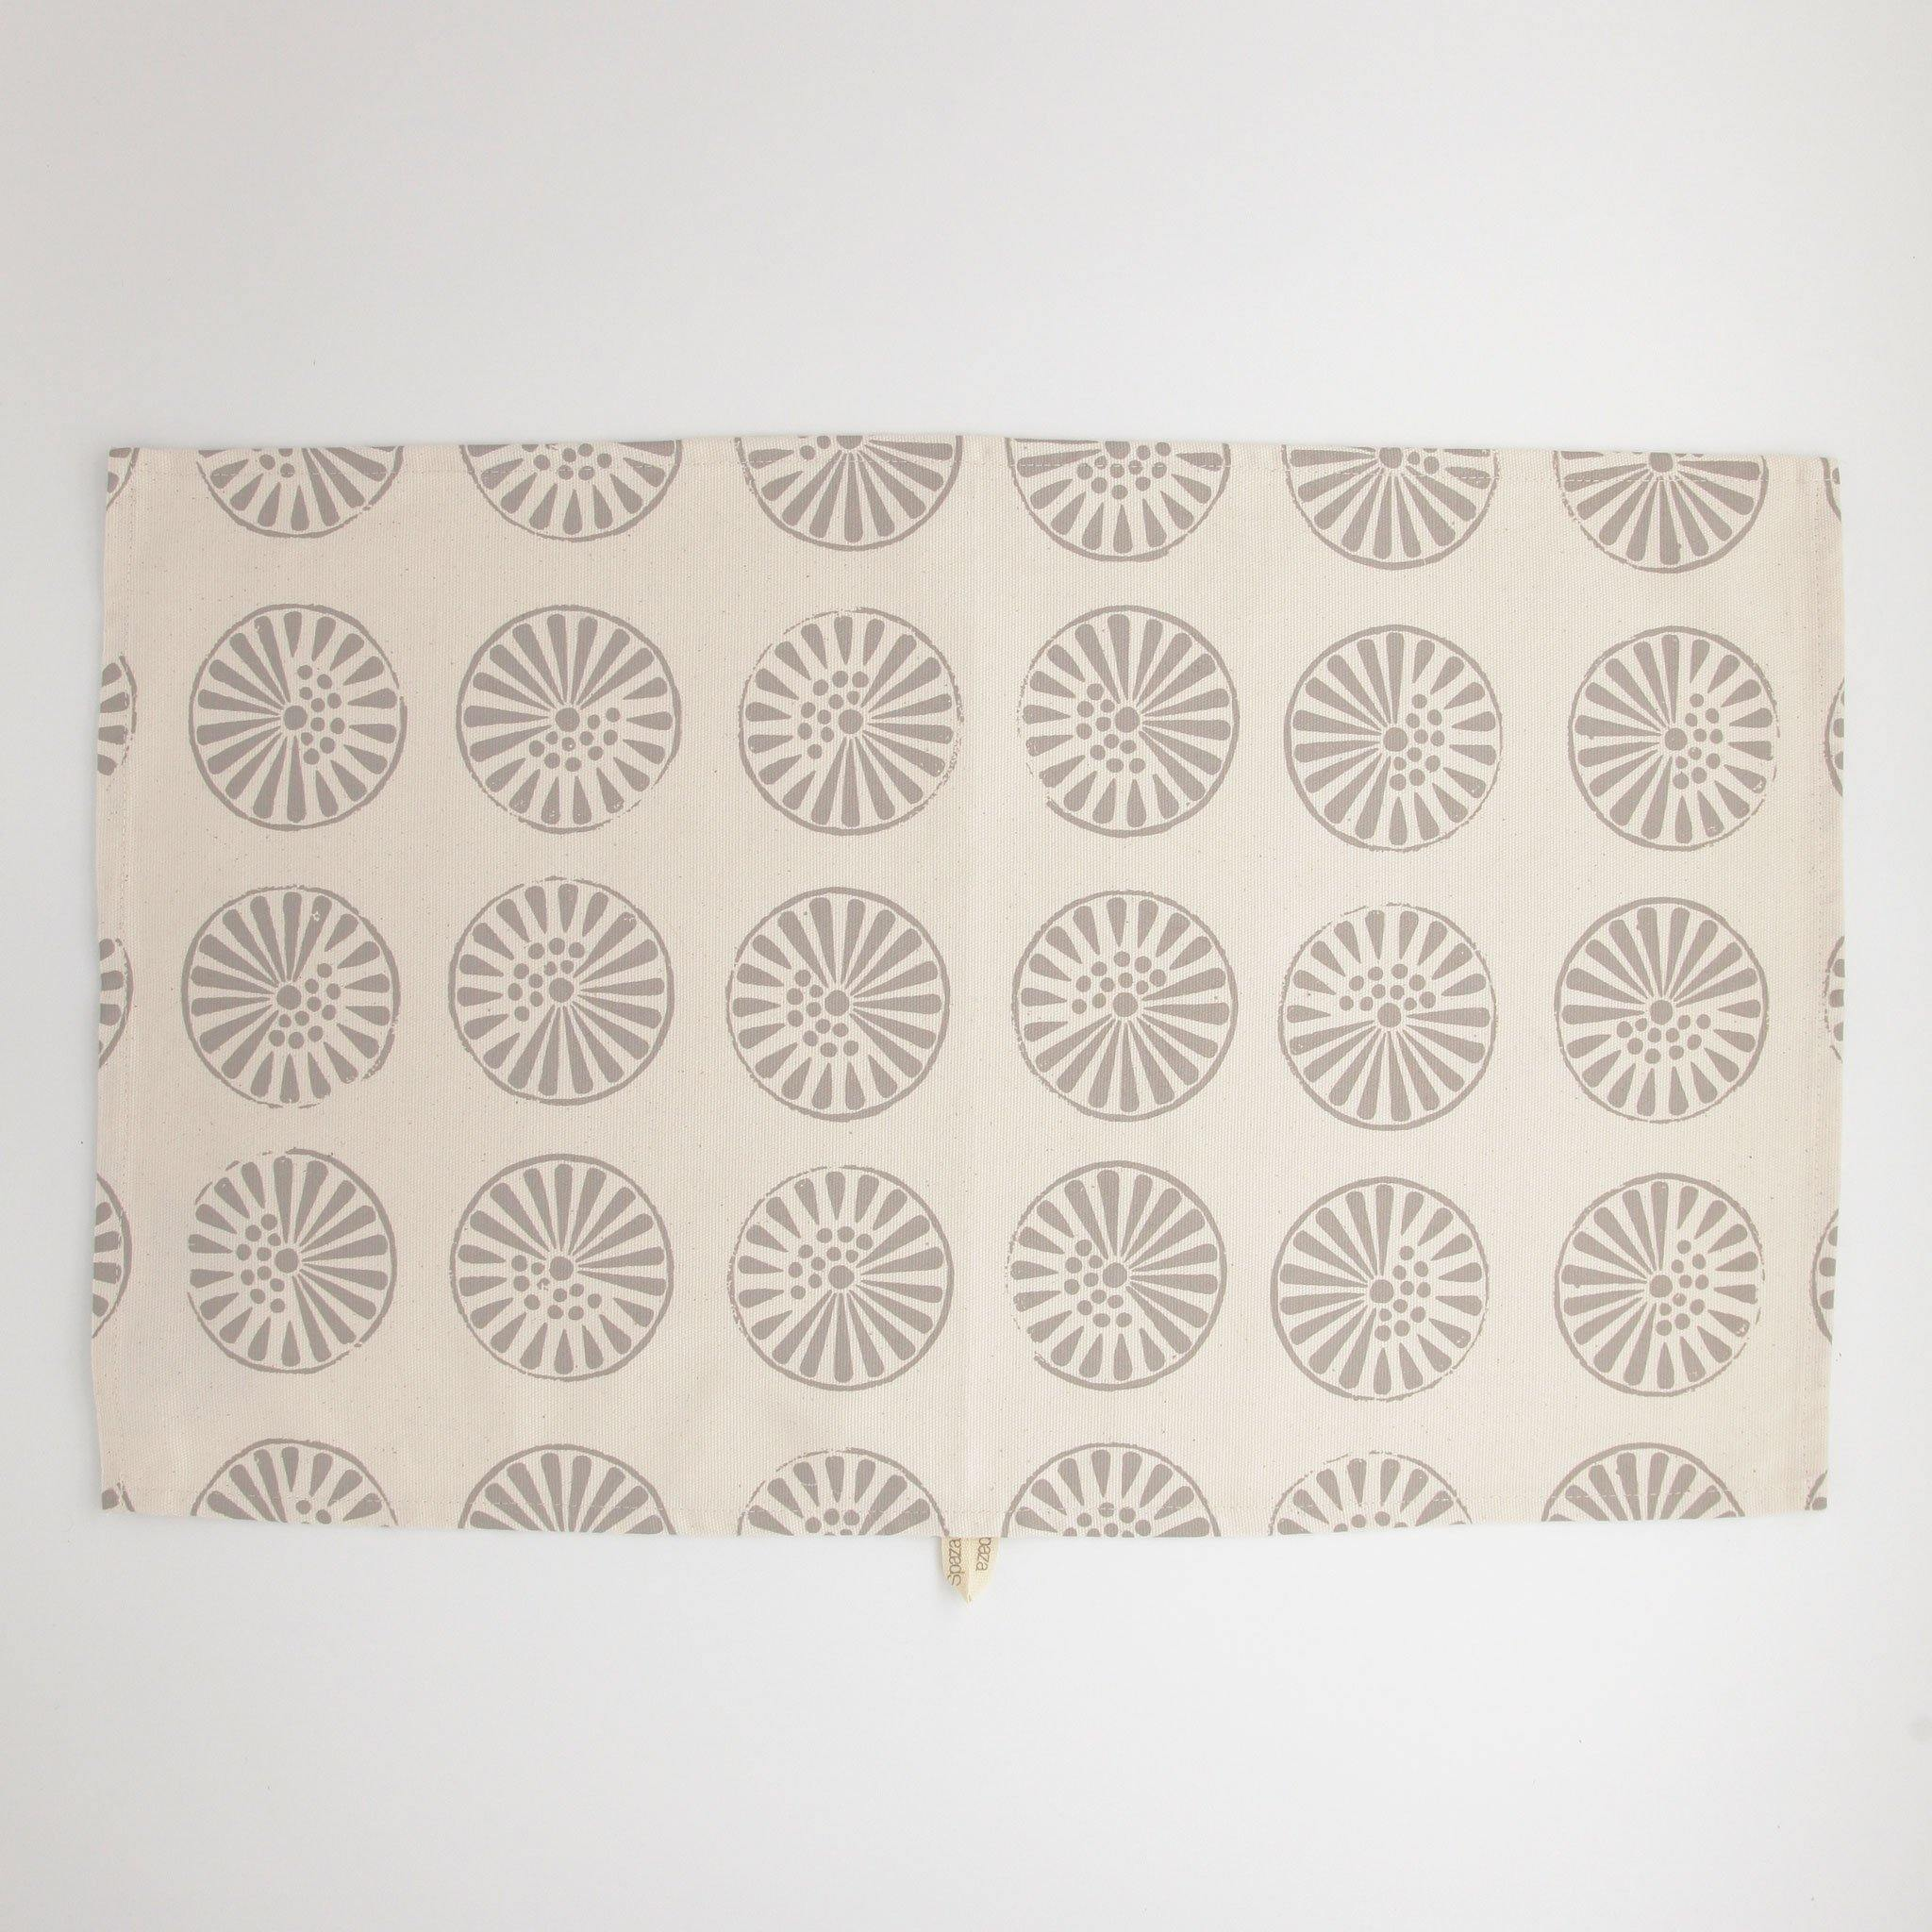 Tea Towel Pincushion Print |thick and absorbent towel